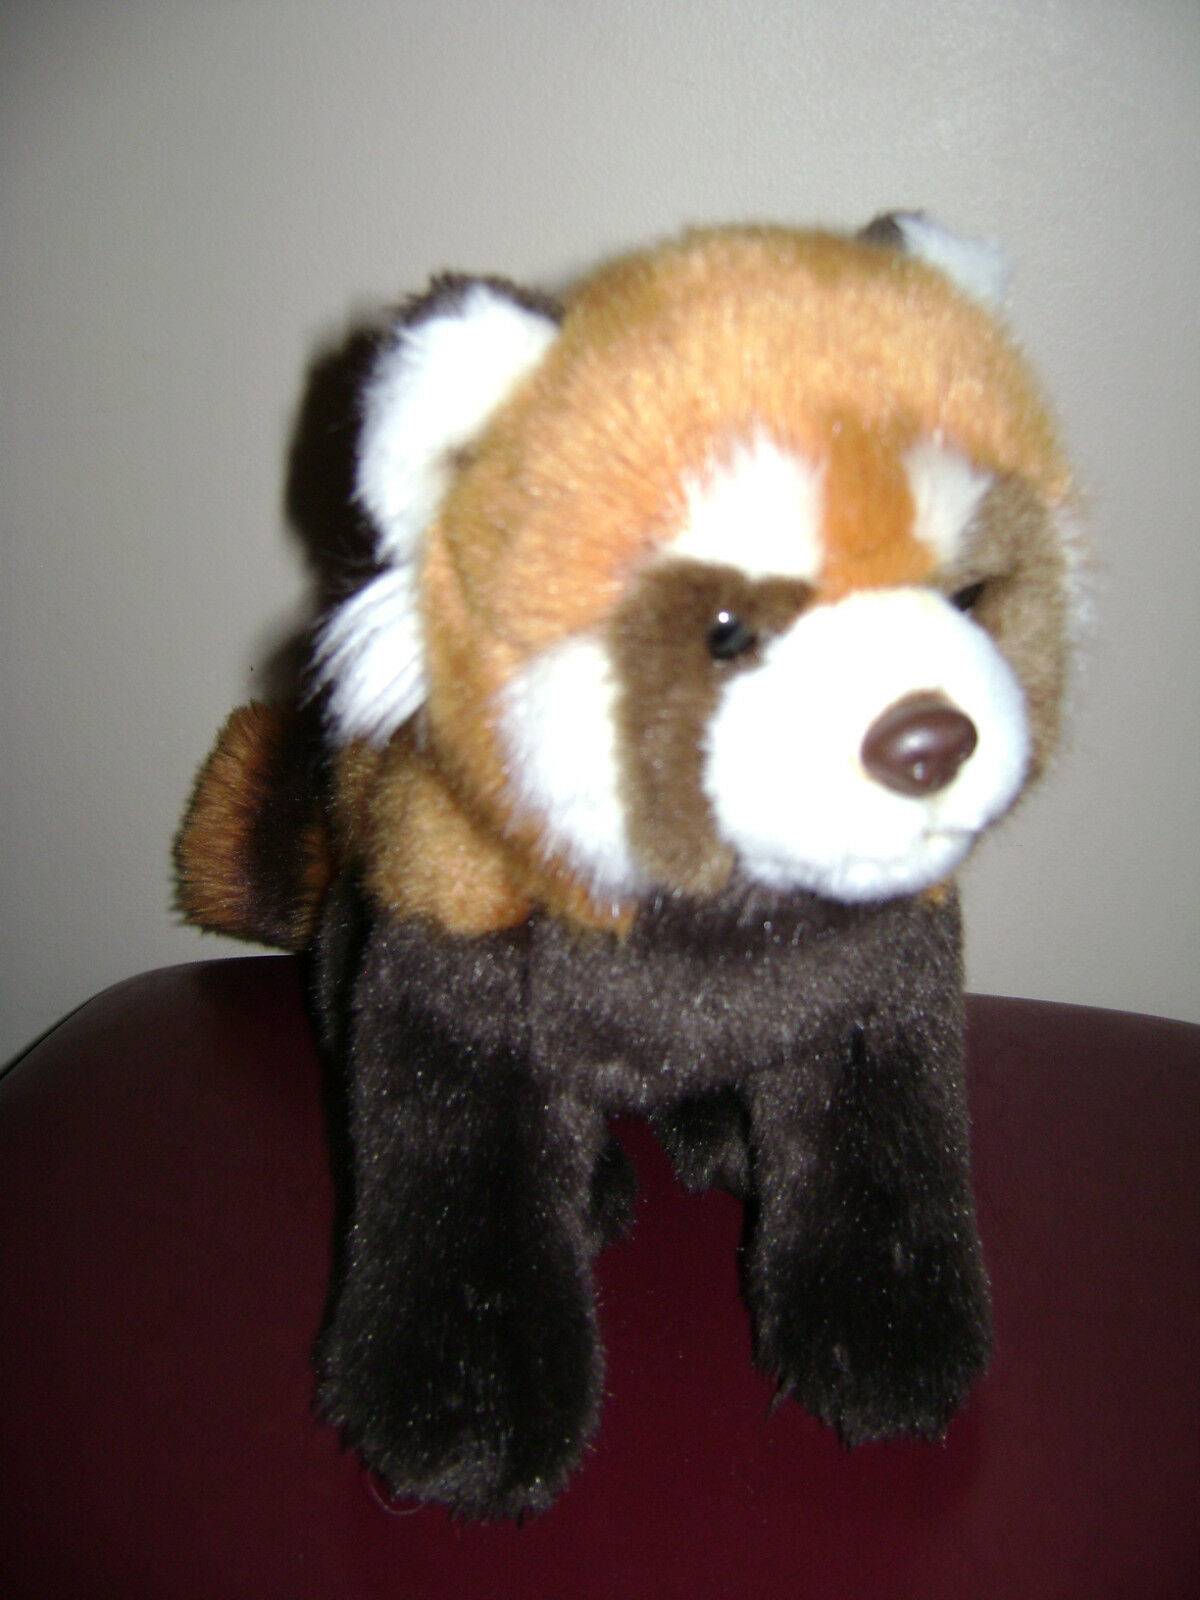 Webkinz Signature EndangeROT ROT Panda WKSE3015 by GANZ  PLUSH STUFFED TOY